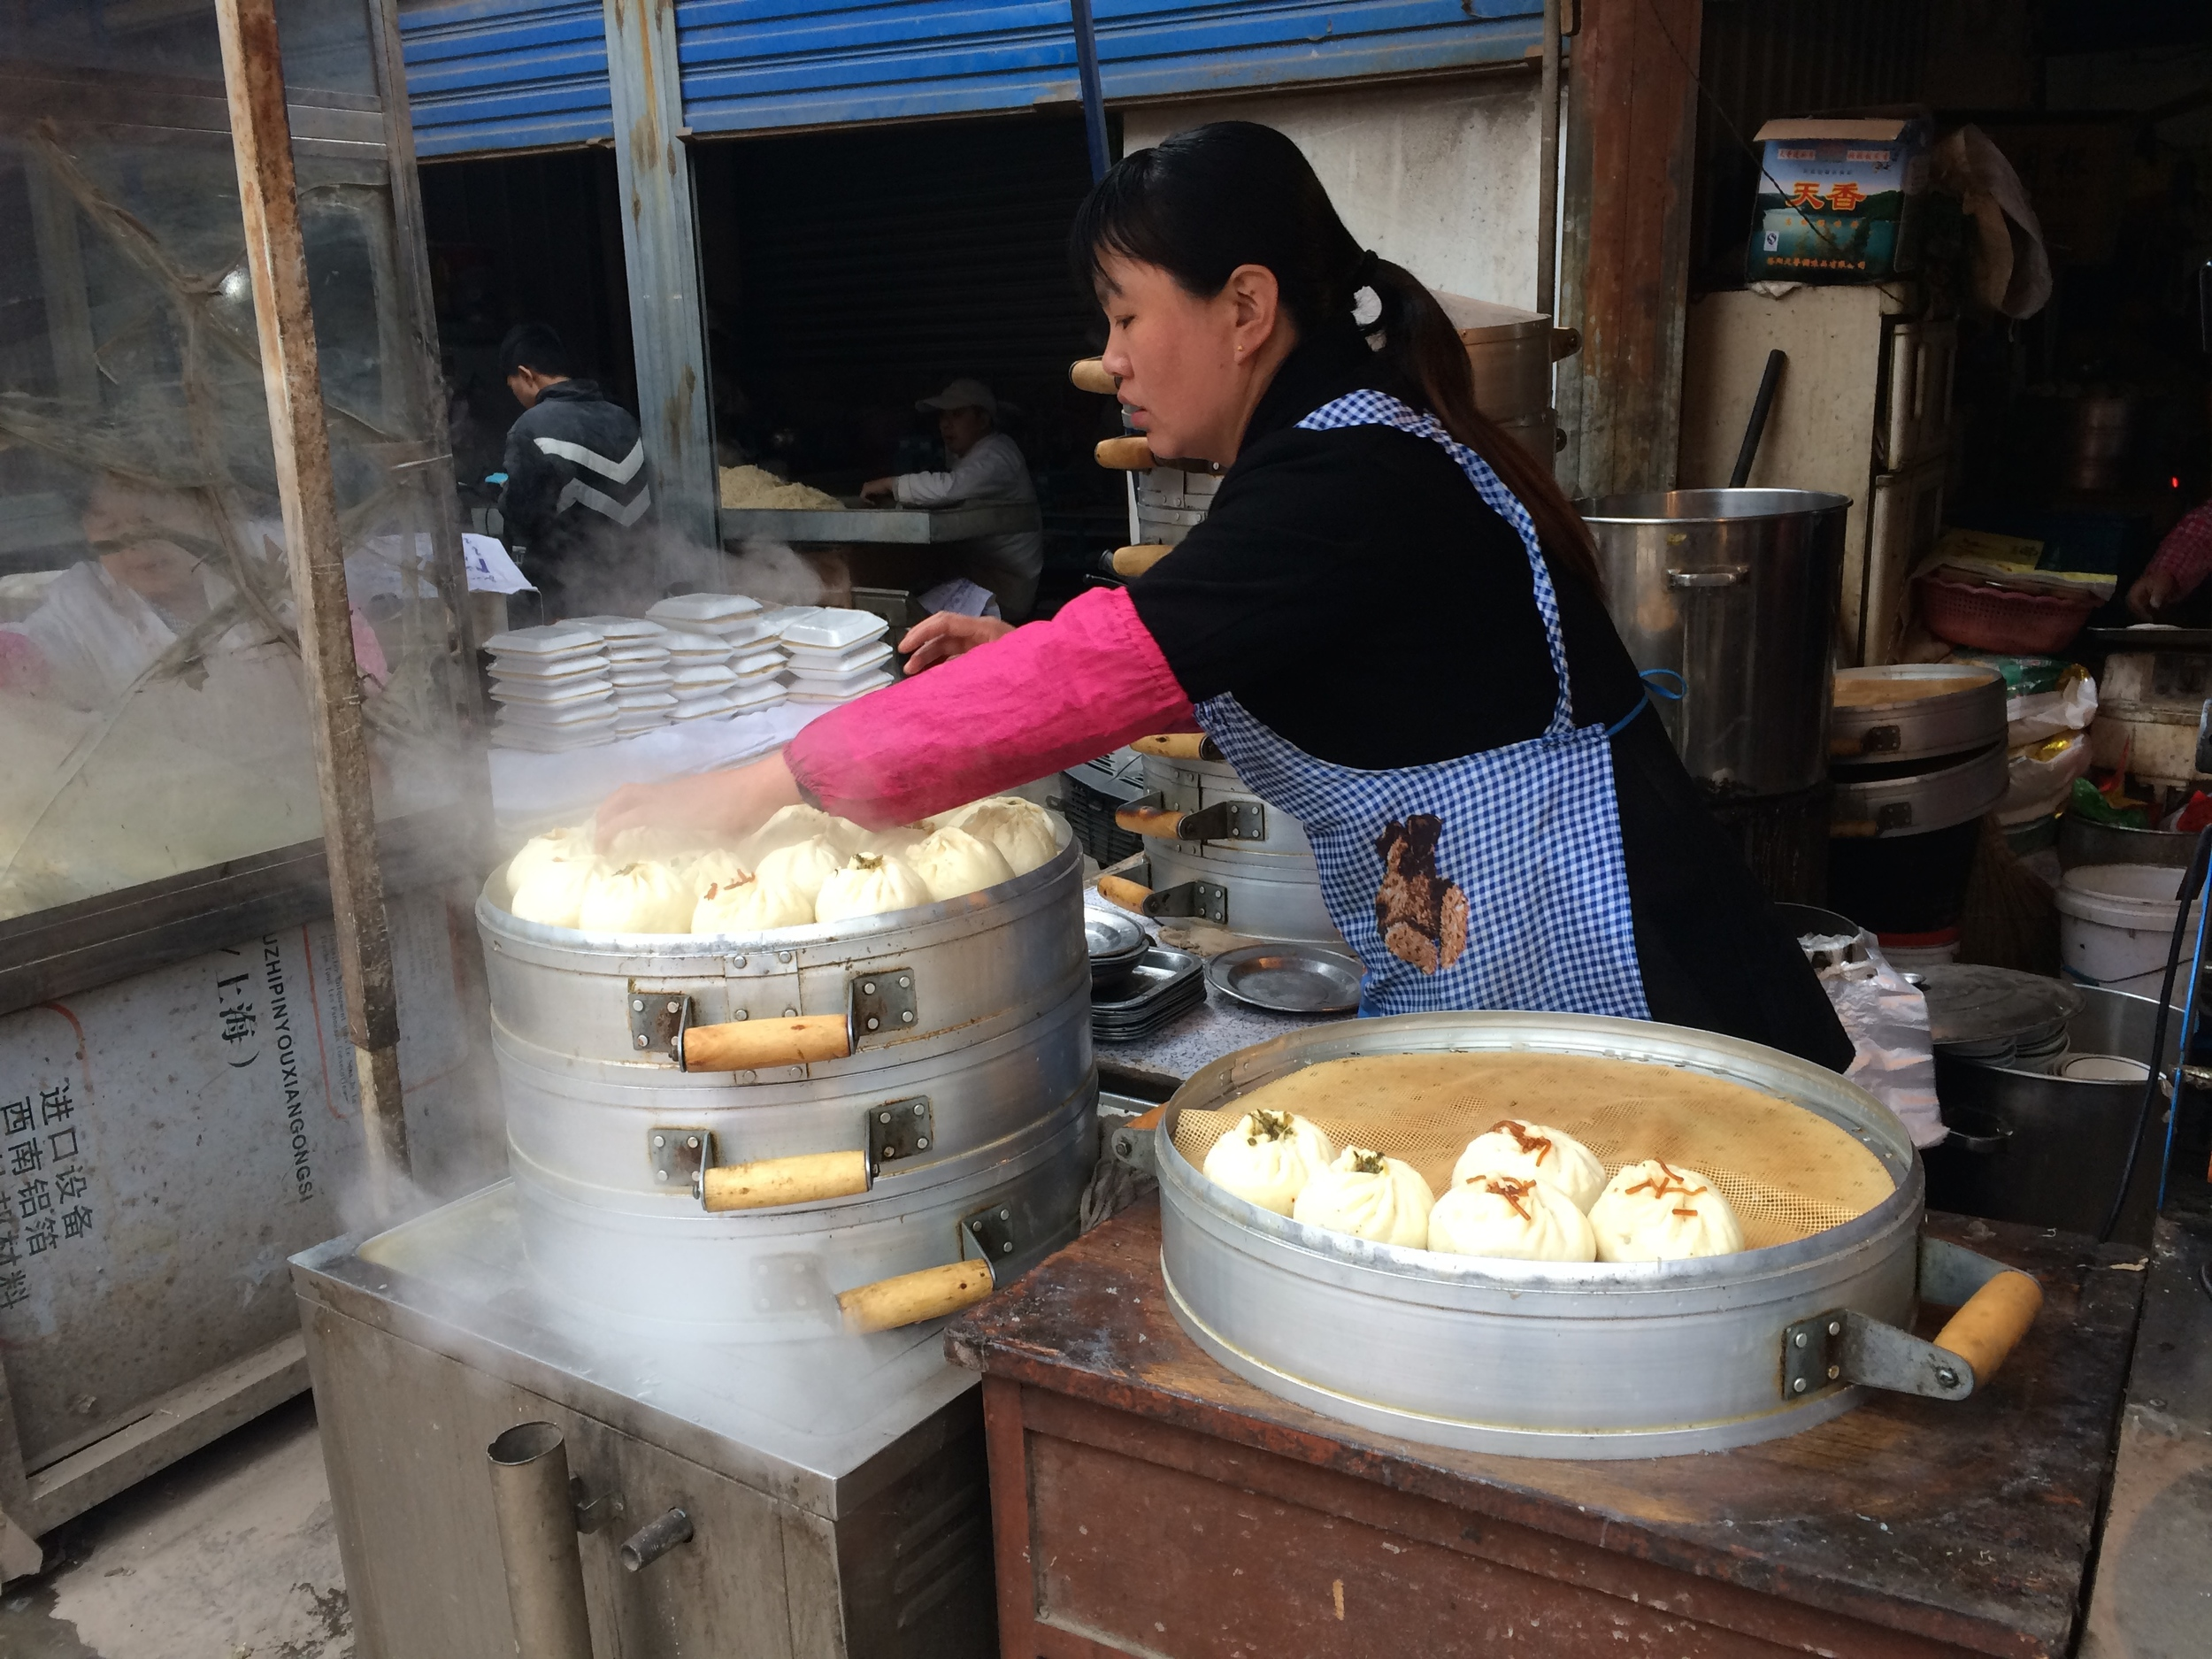 Delicious steam buns filled with pork and onion at the market in Sanmenxia.